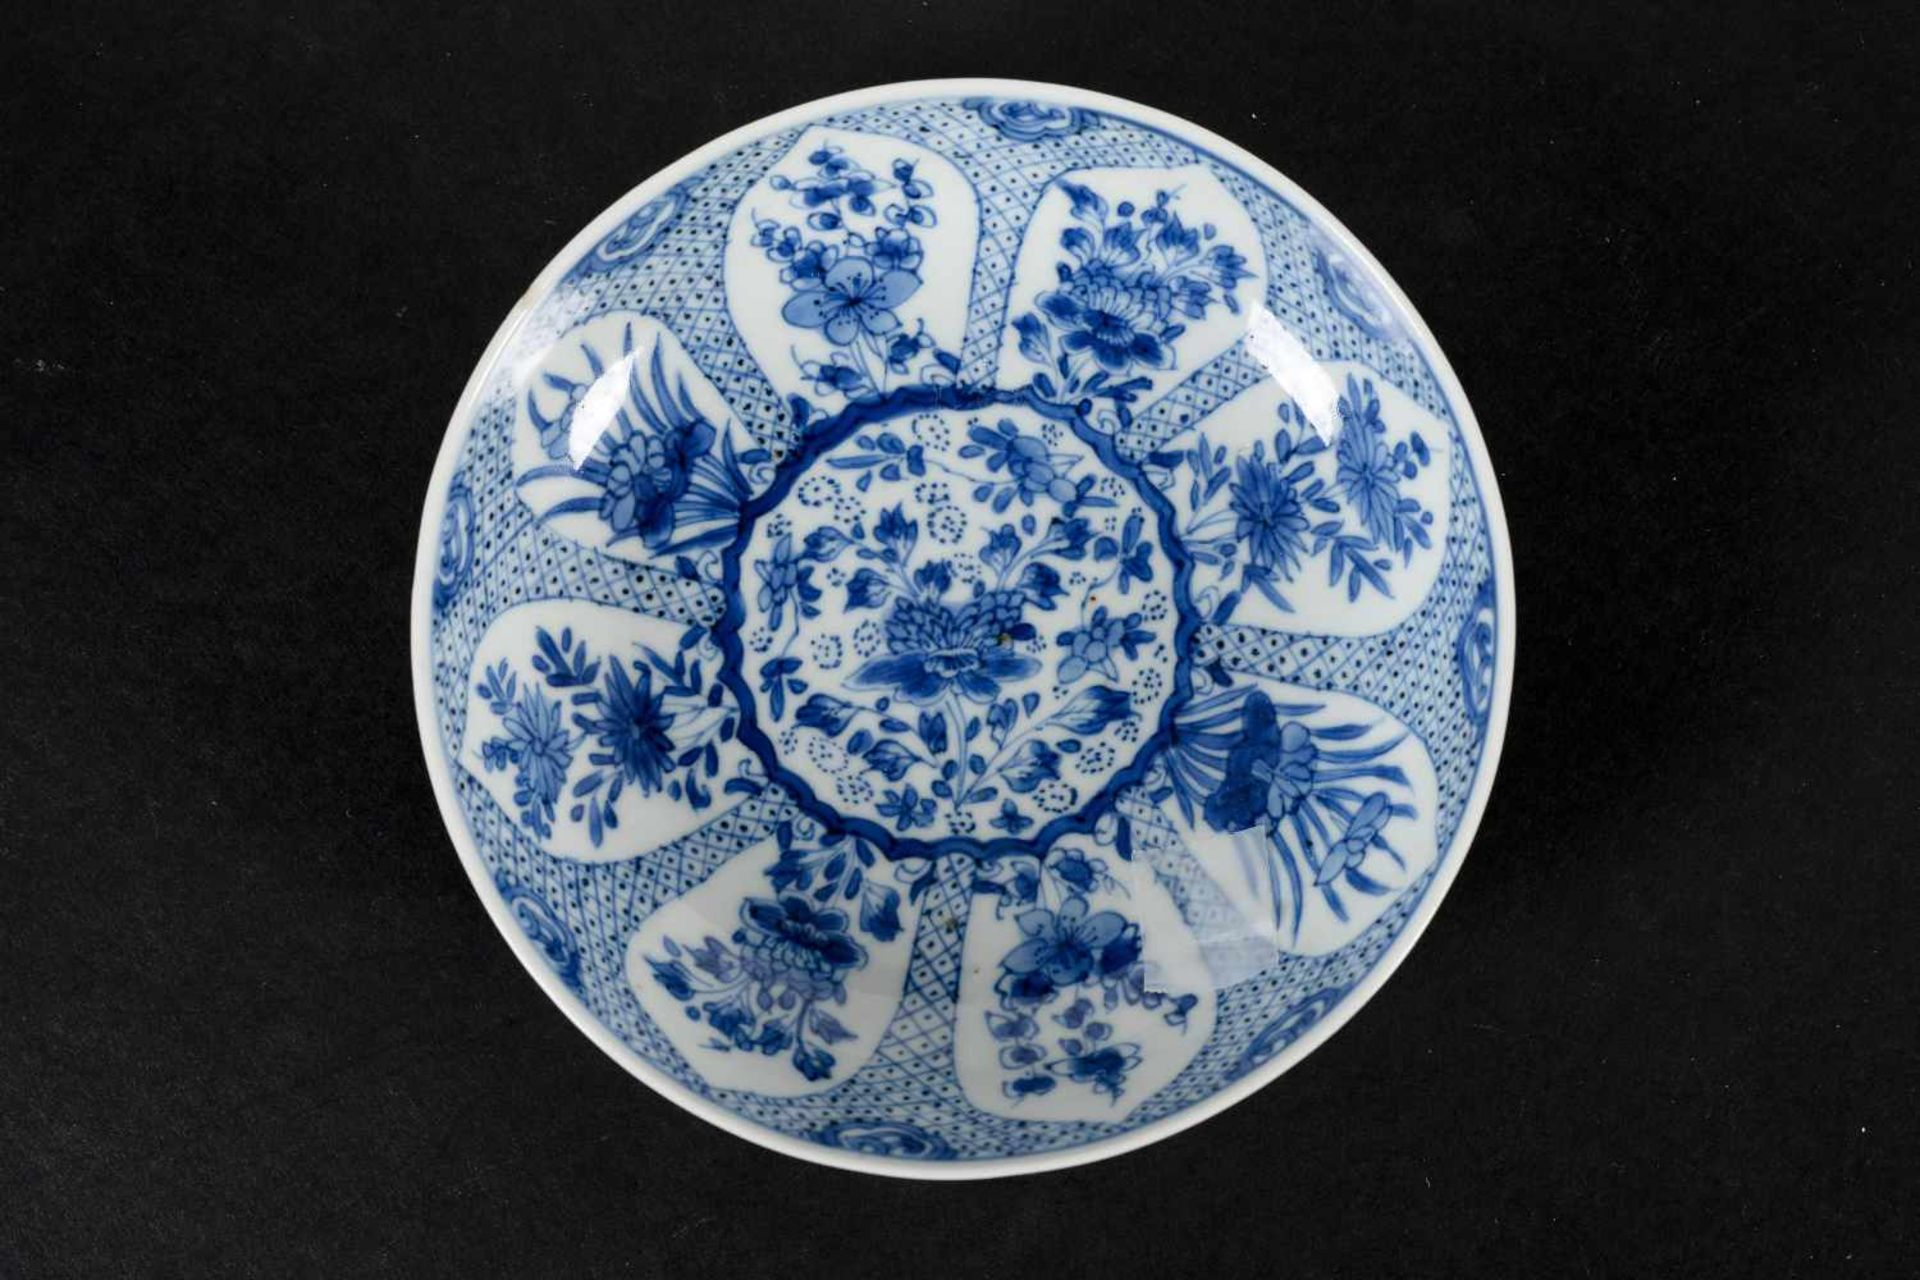 A blue and white porcelain lidded cup with two handles on a deep saucer, decorated with flowers. - Bild 3 aus 9